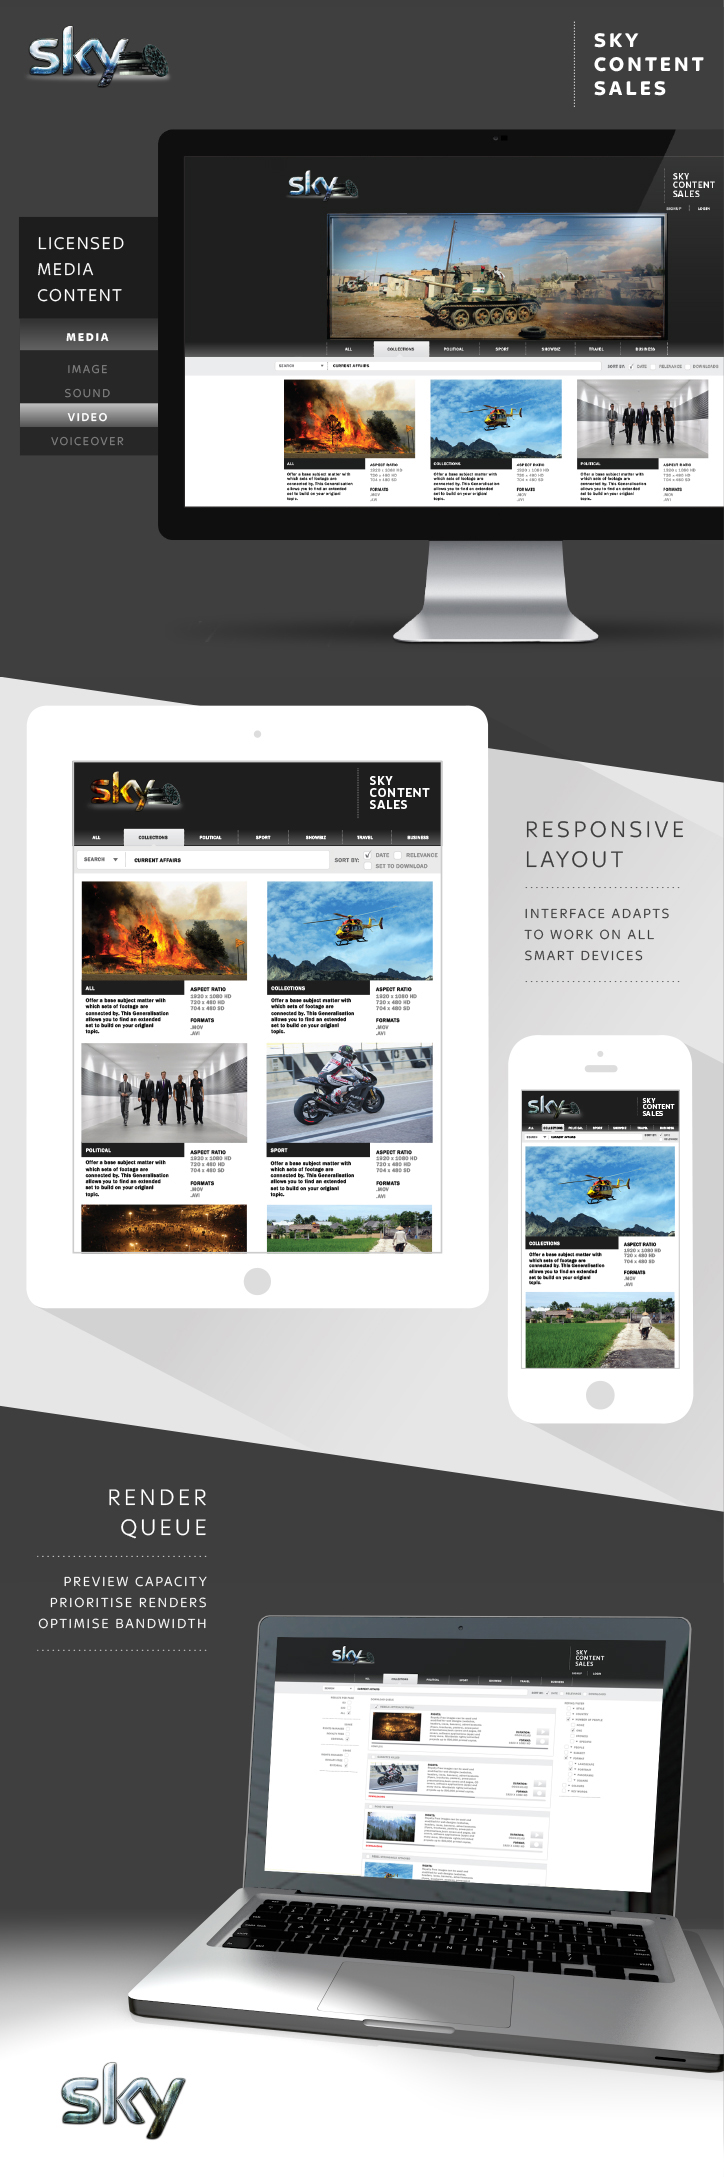 Sky Content Sales Site - Project Mockup 4.jpg